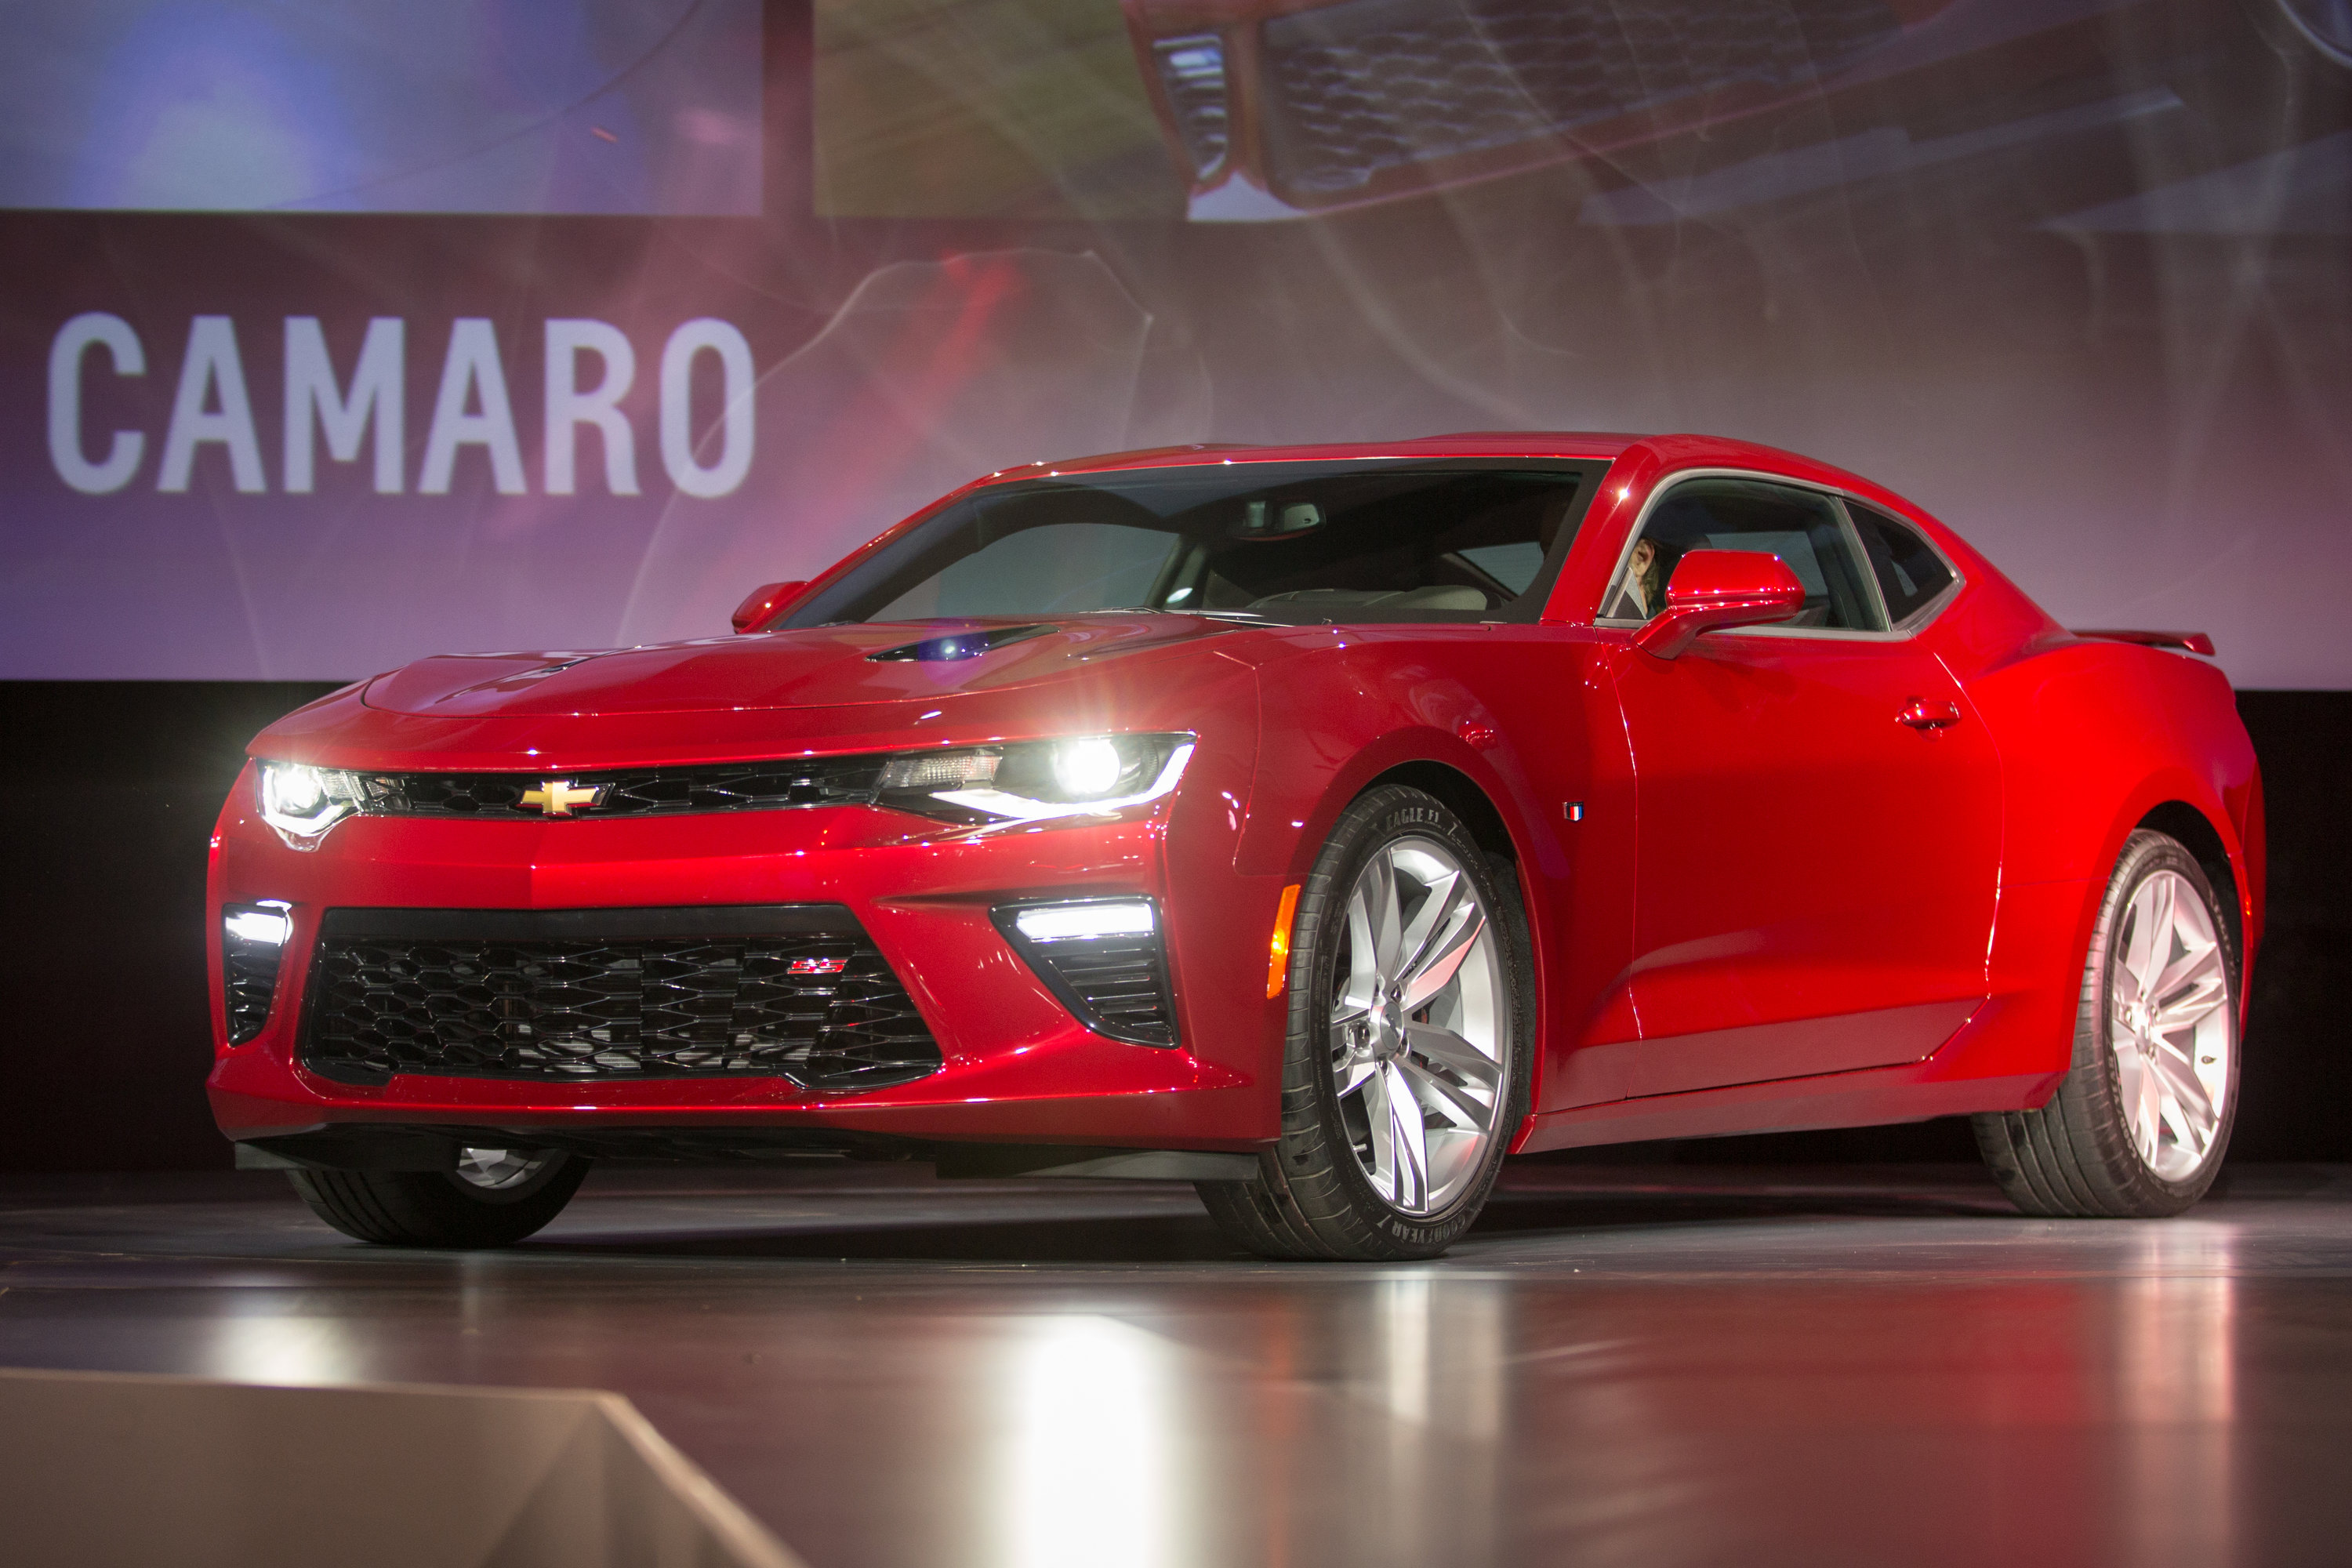 2016 Camaro revealed with more power, less weight - ChevyTV